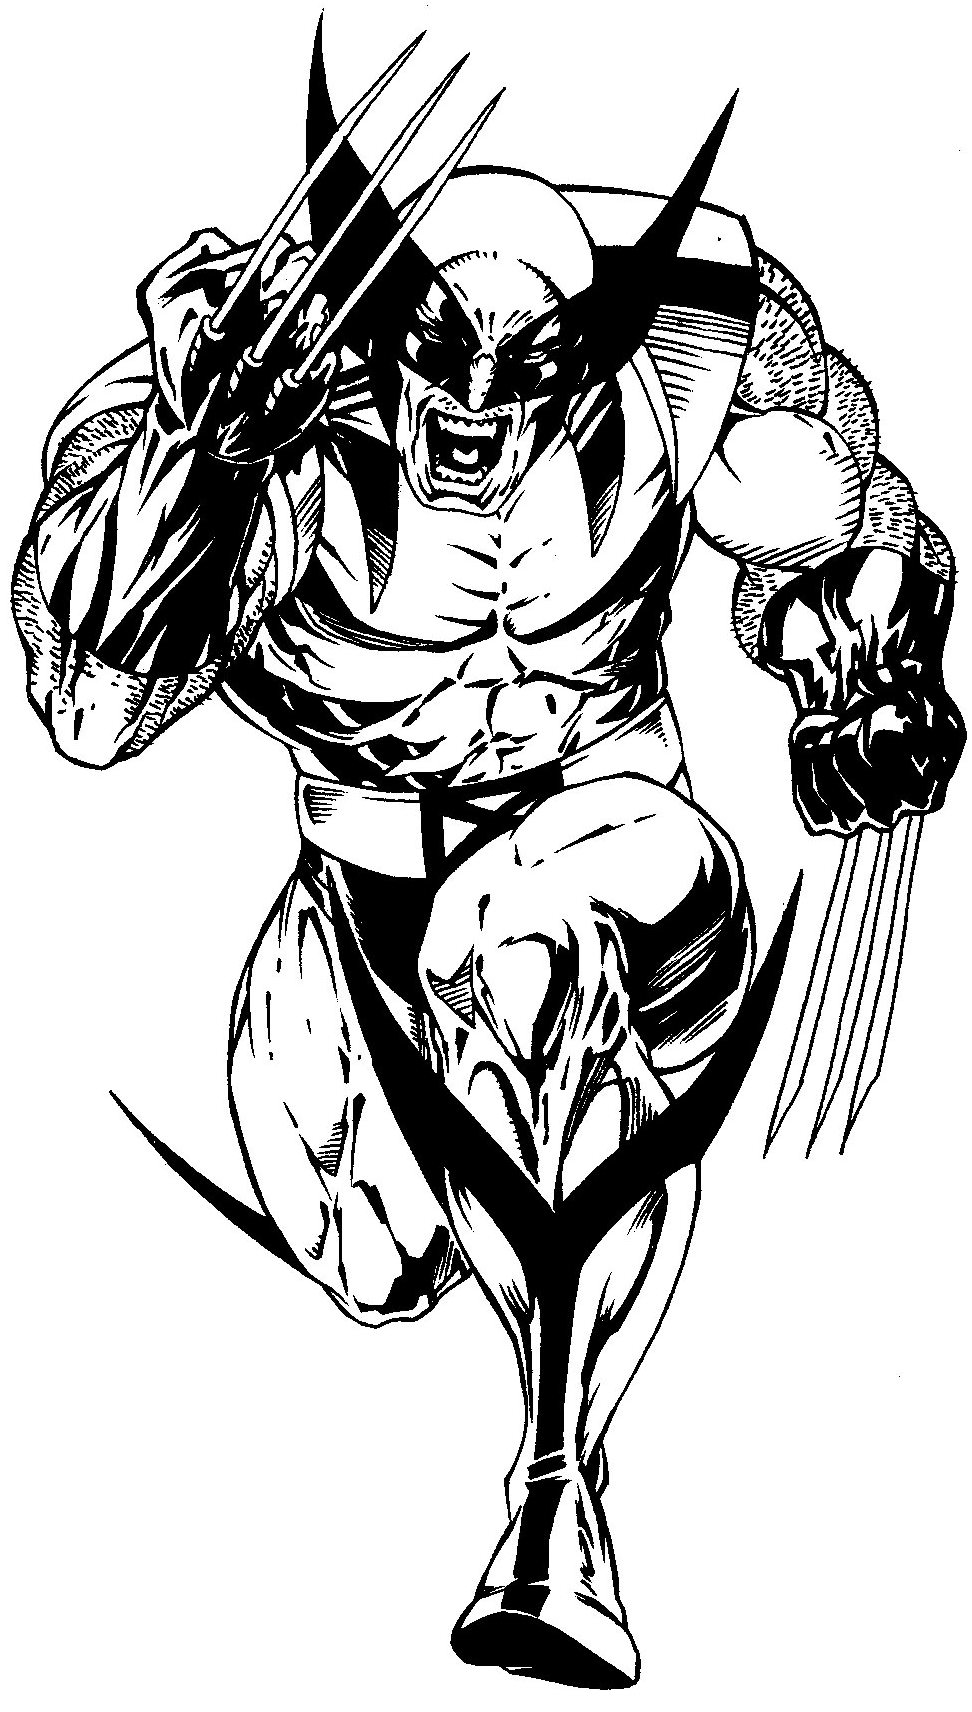 Wolverine Logan free coloring pages to print – Colorpages.org